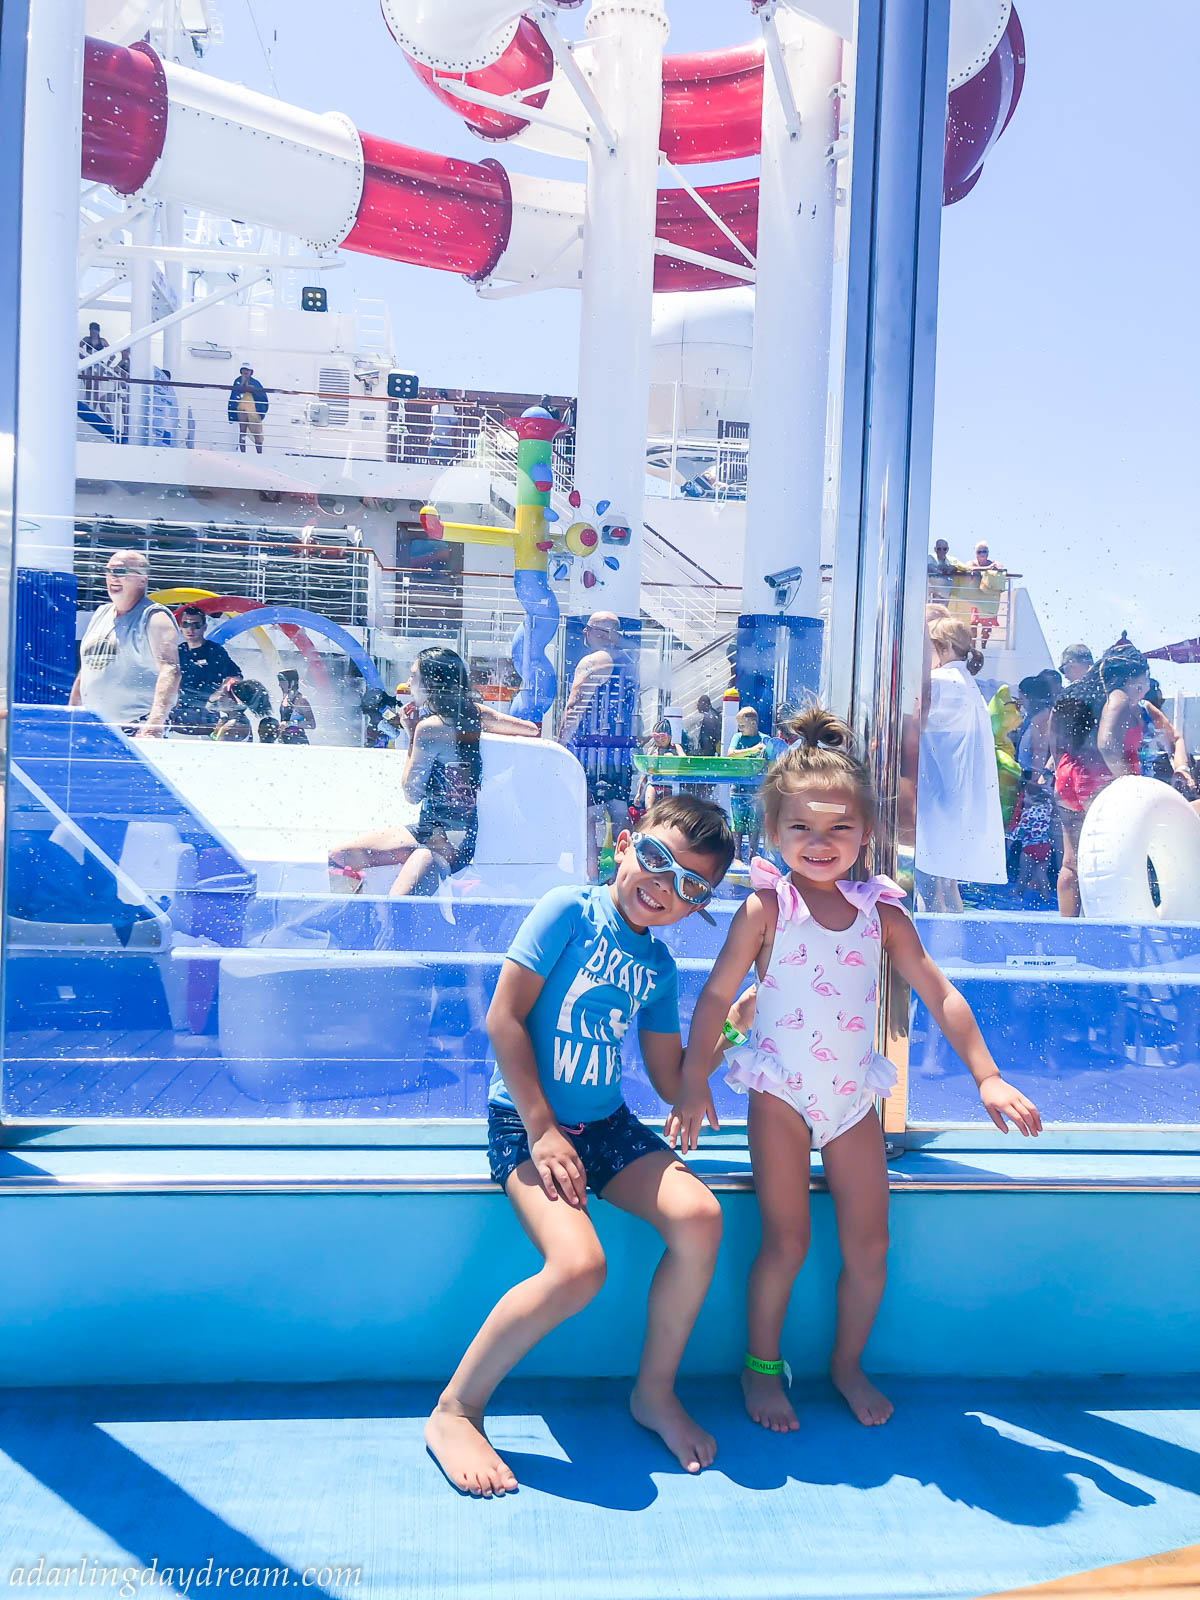 Carnival-Cruise-Travel-Blog-Post-2